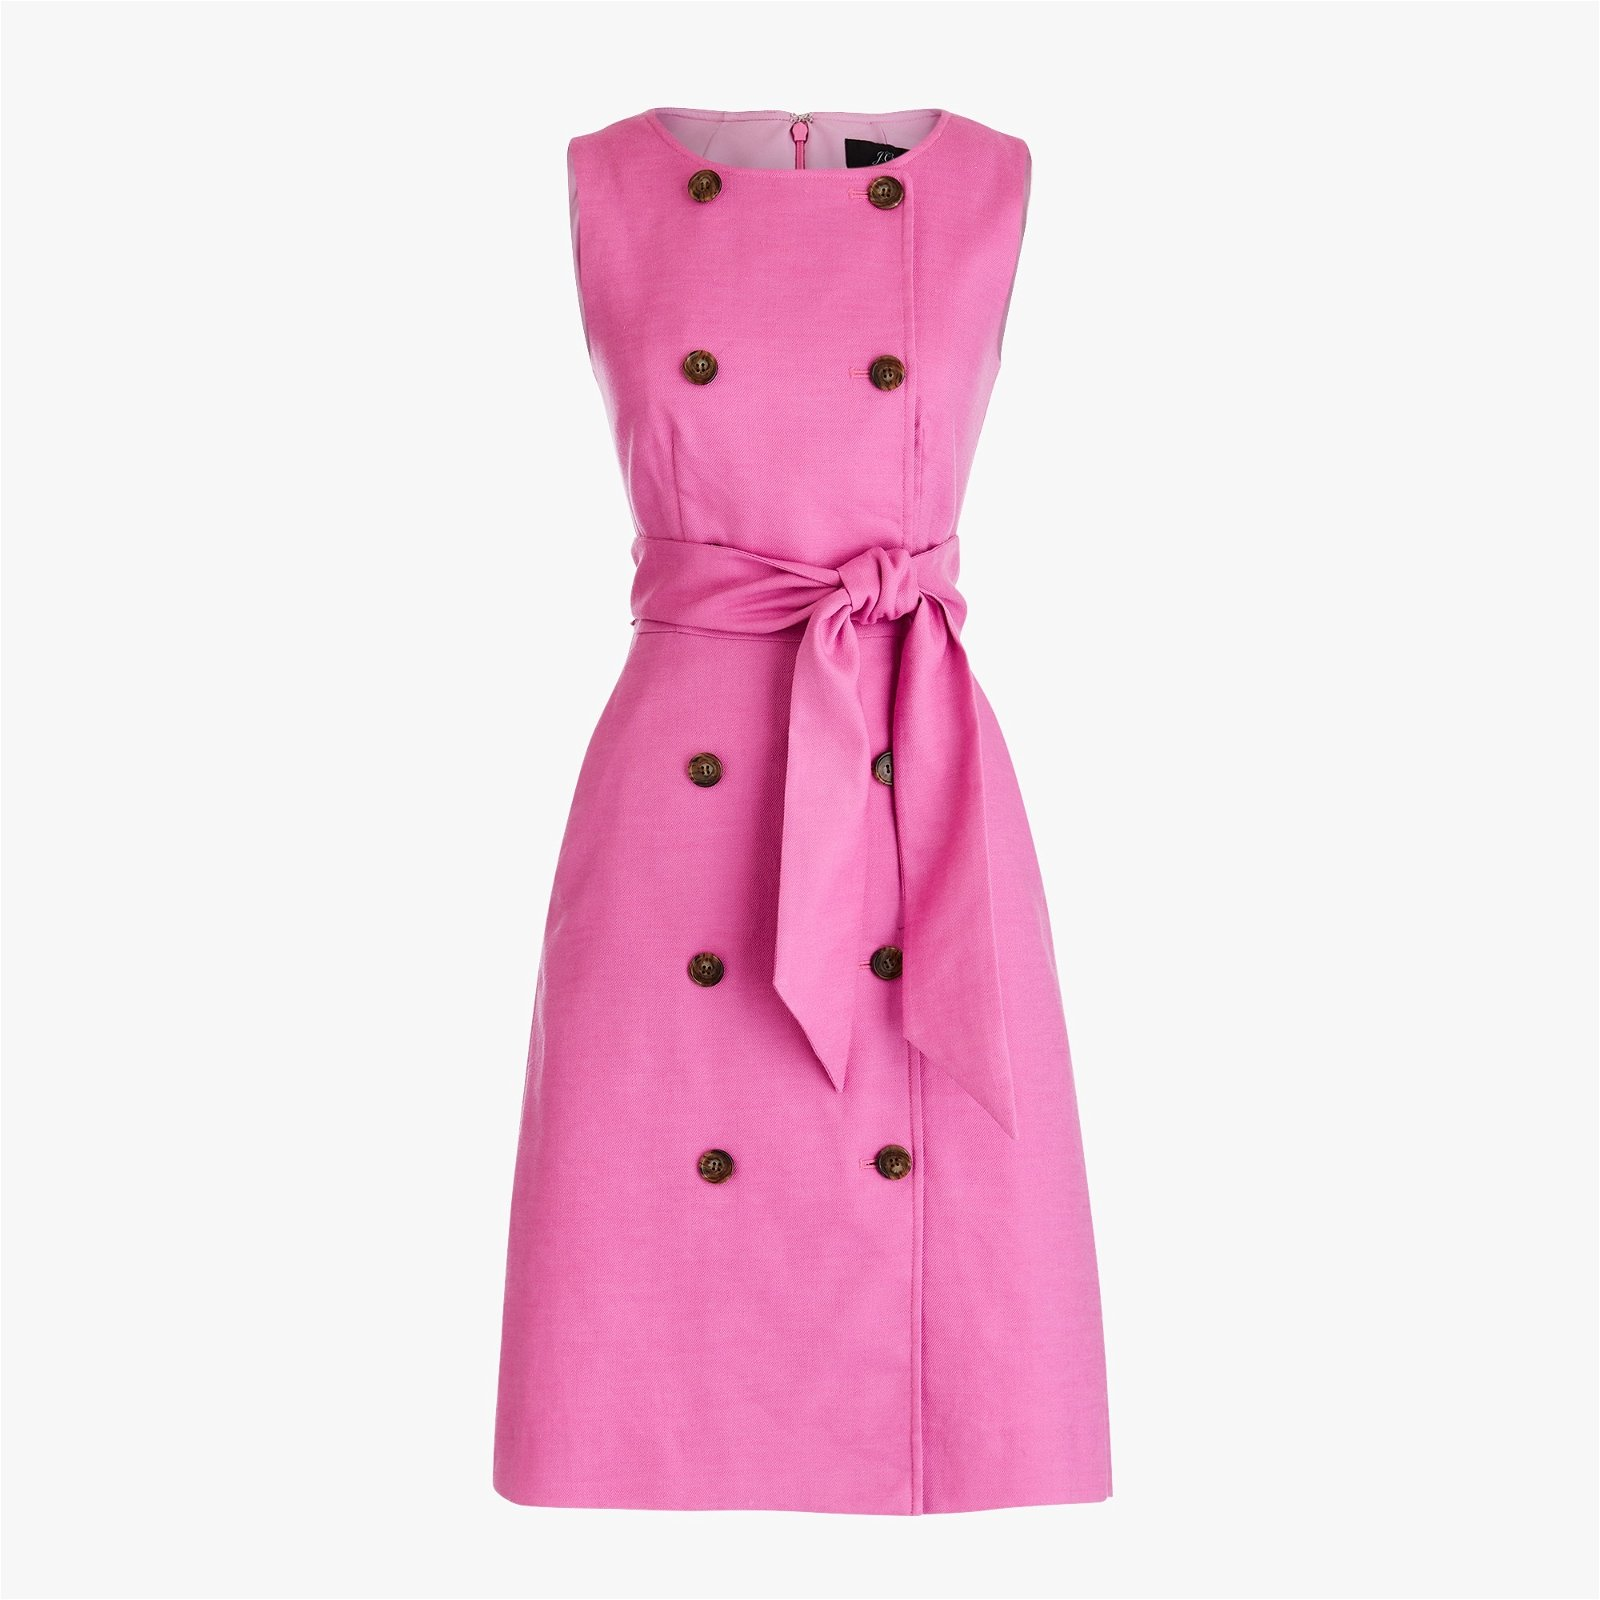 Classic Double-breasted sleeveless sheath dress in stretch linen